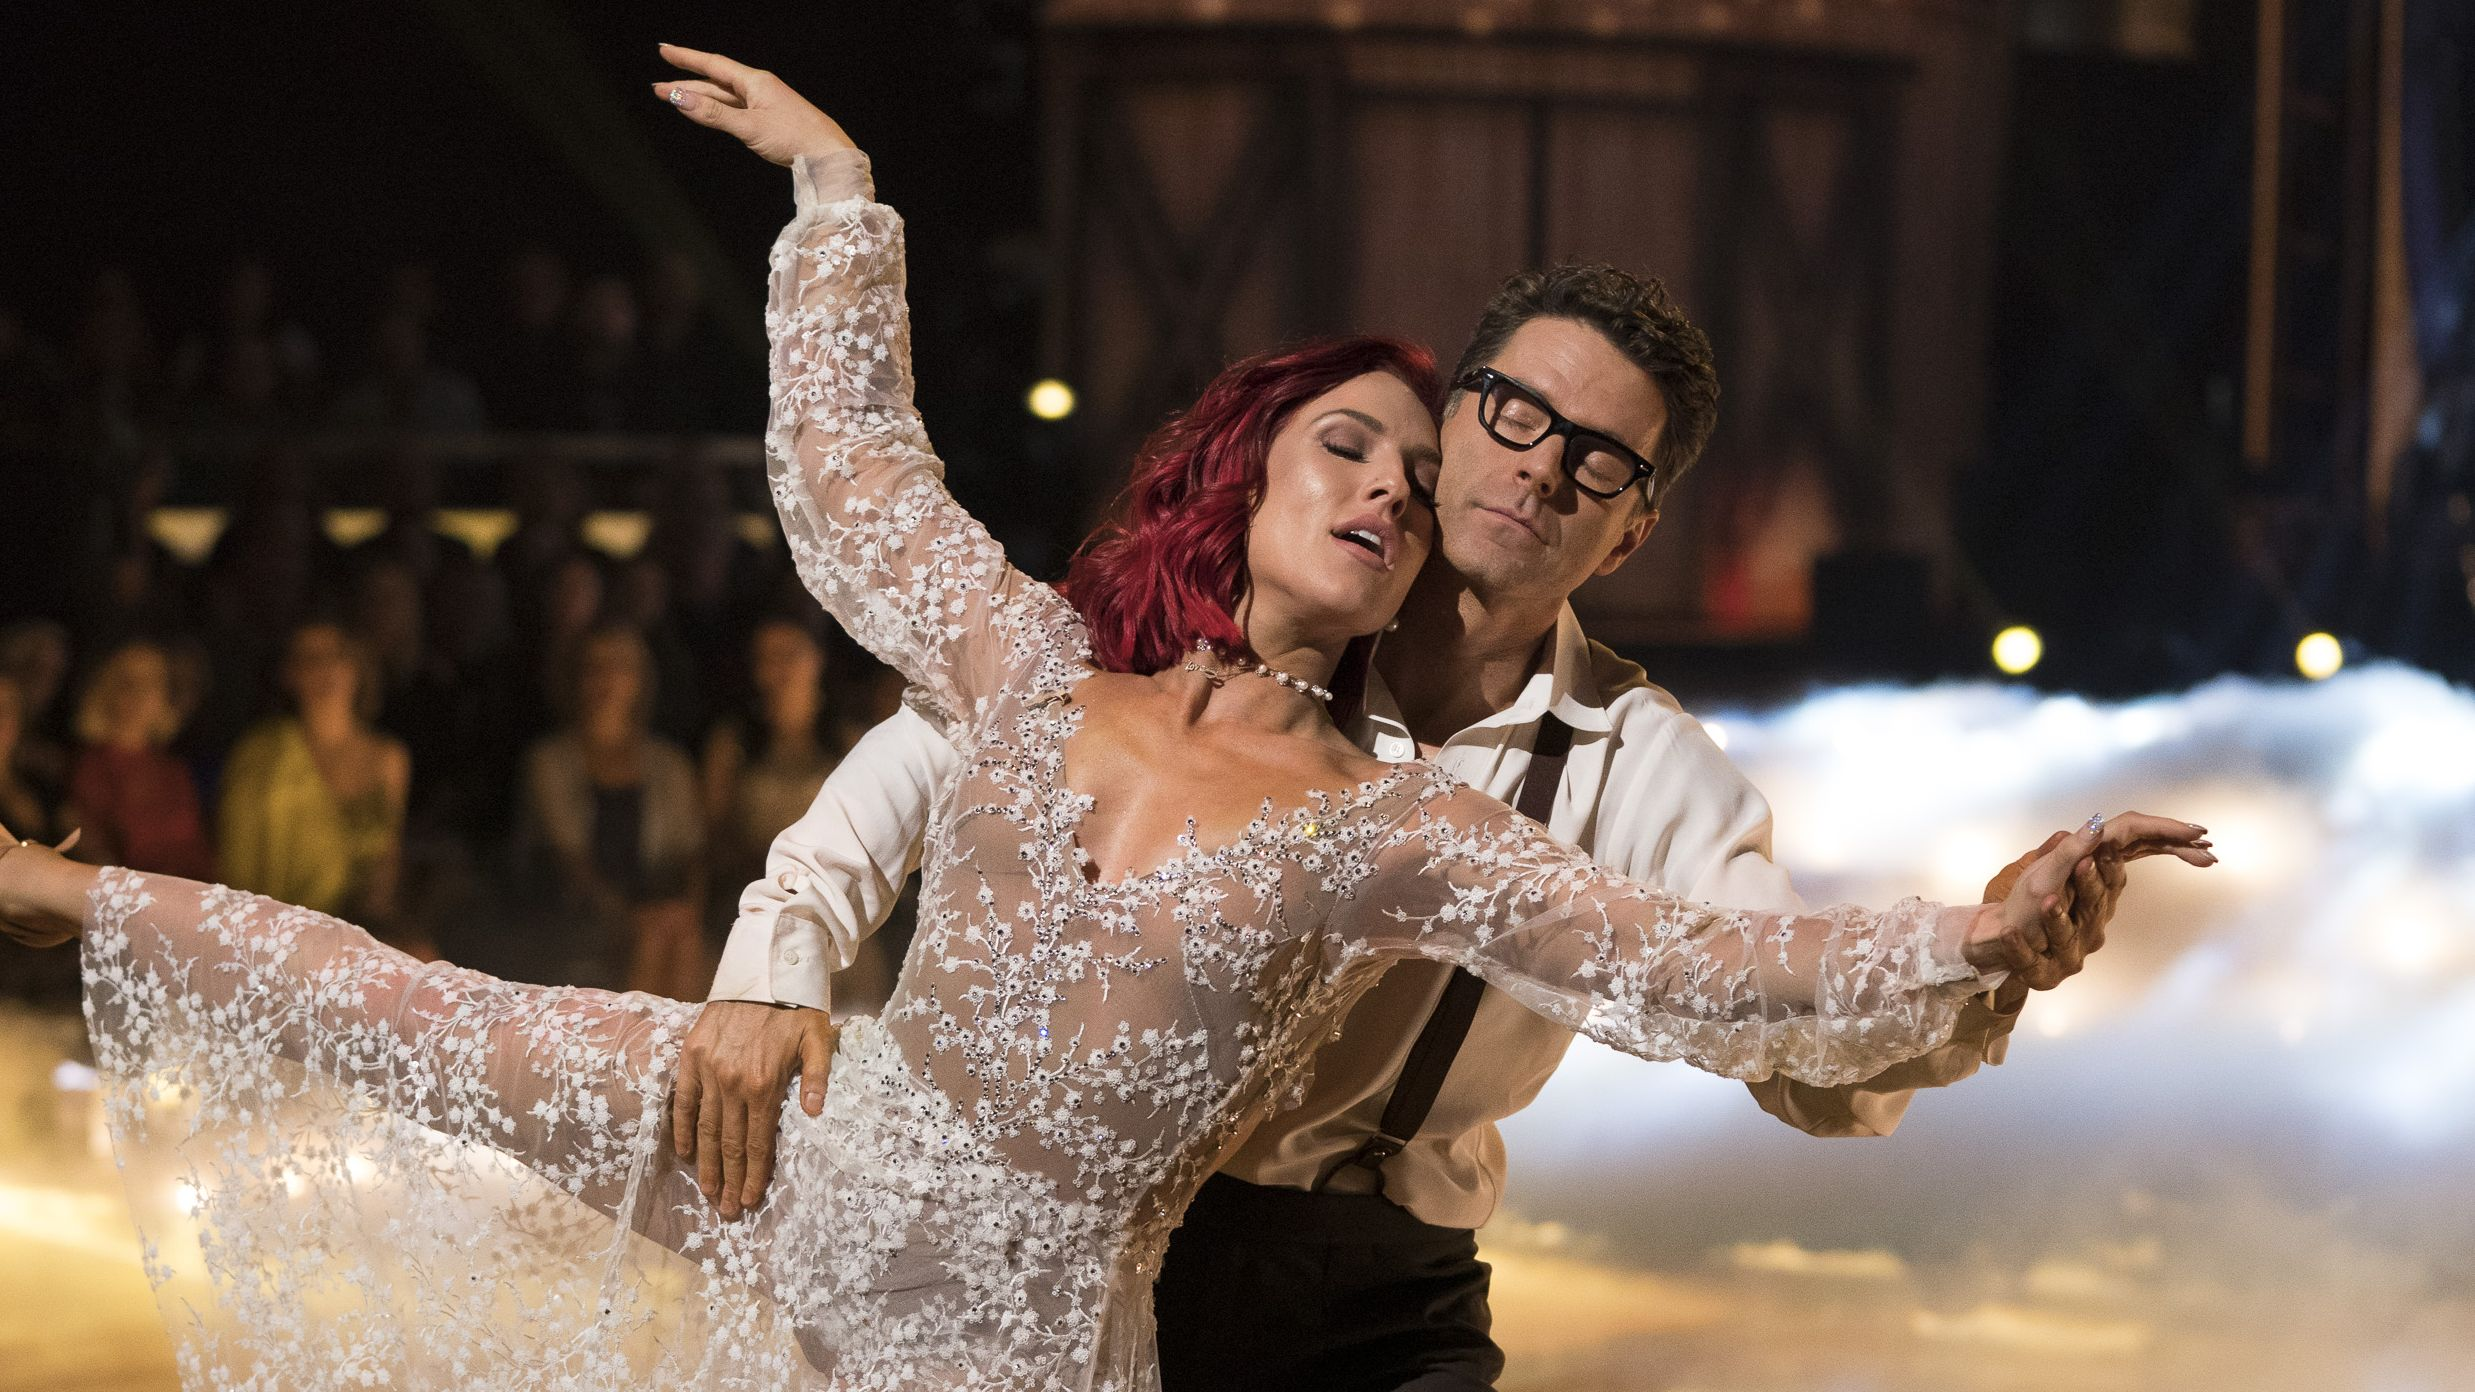 Bobby Bones Wins 'Dancing With the Stars' Season 27 and Causes Major Uproar